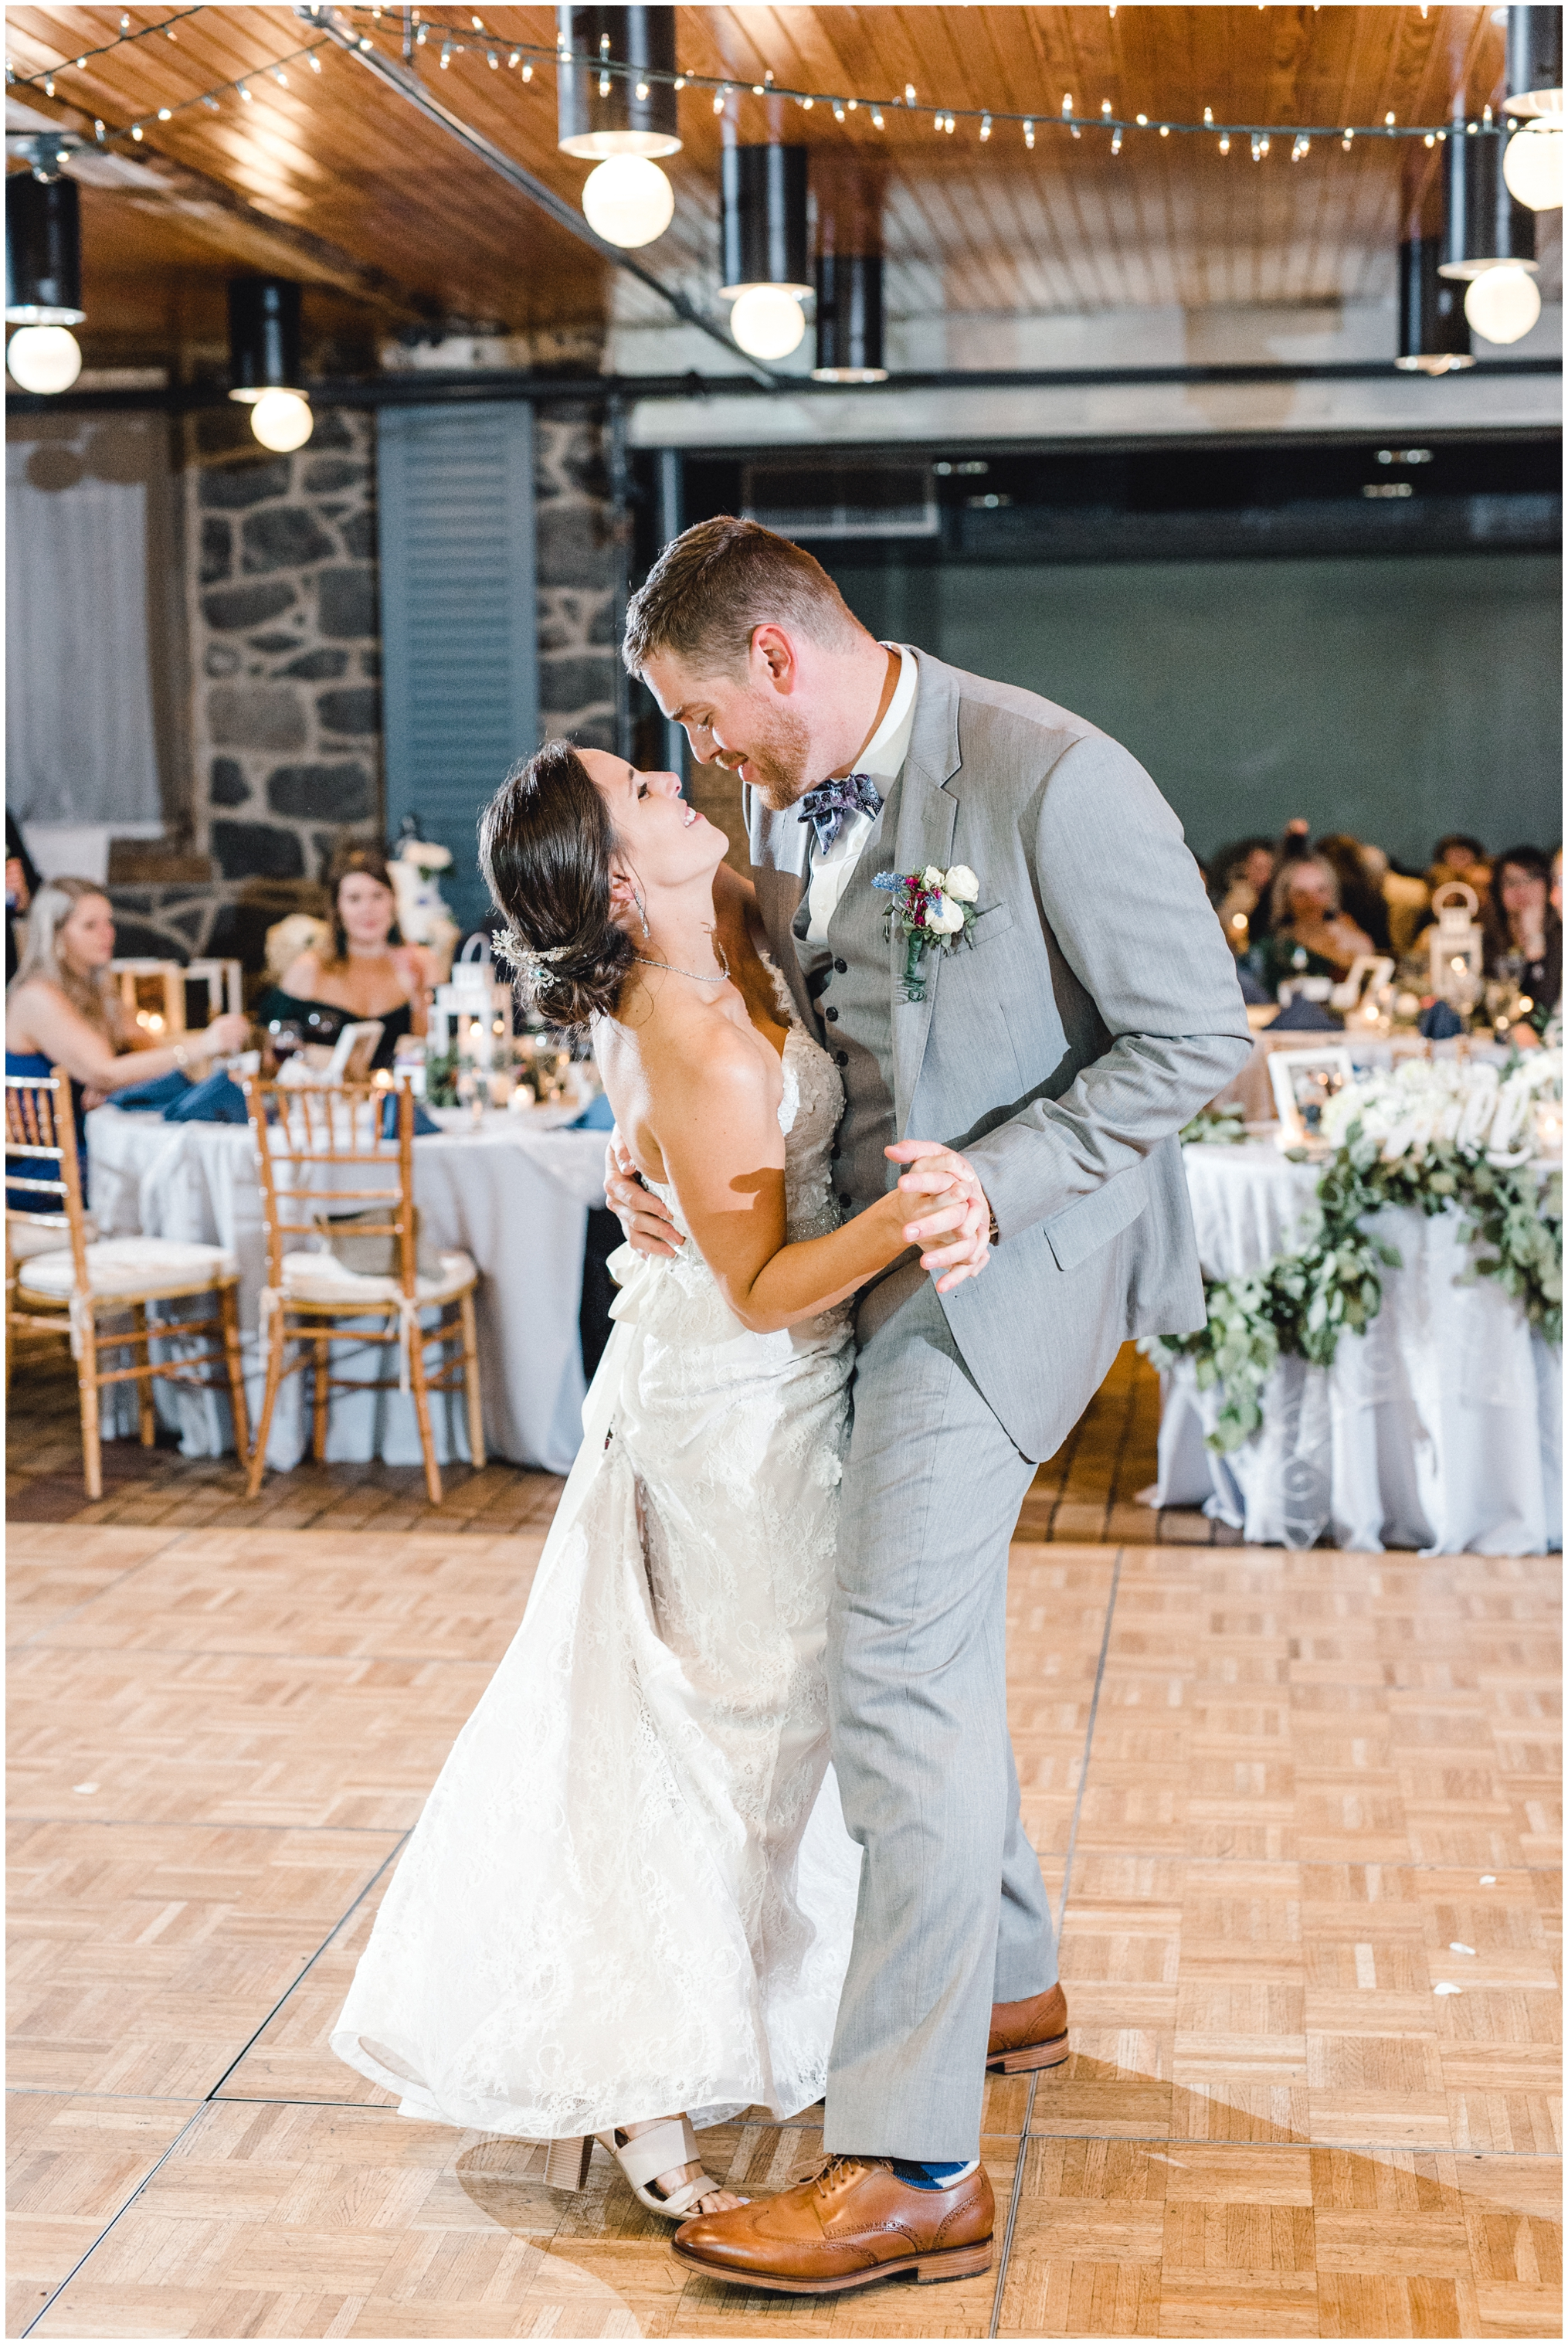 Krista Brackin Photography | April Wedding at The Carriage House at Rockwood Park_0106.jpg